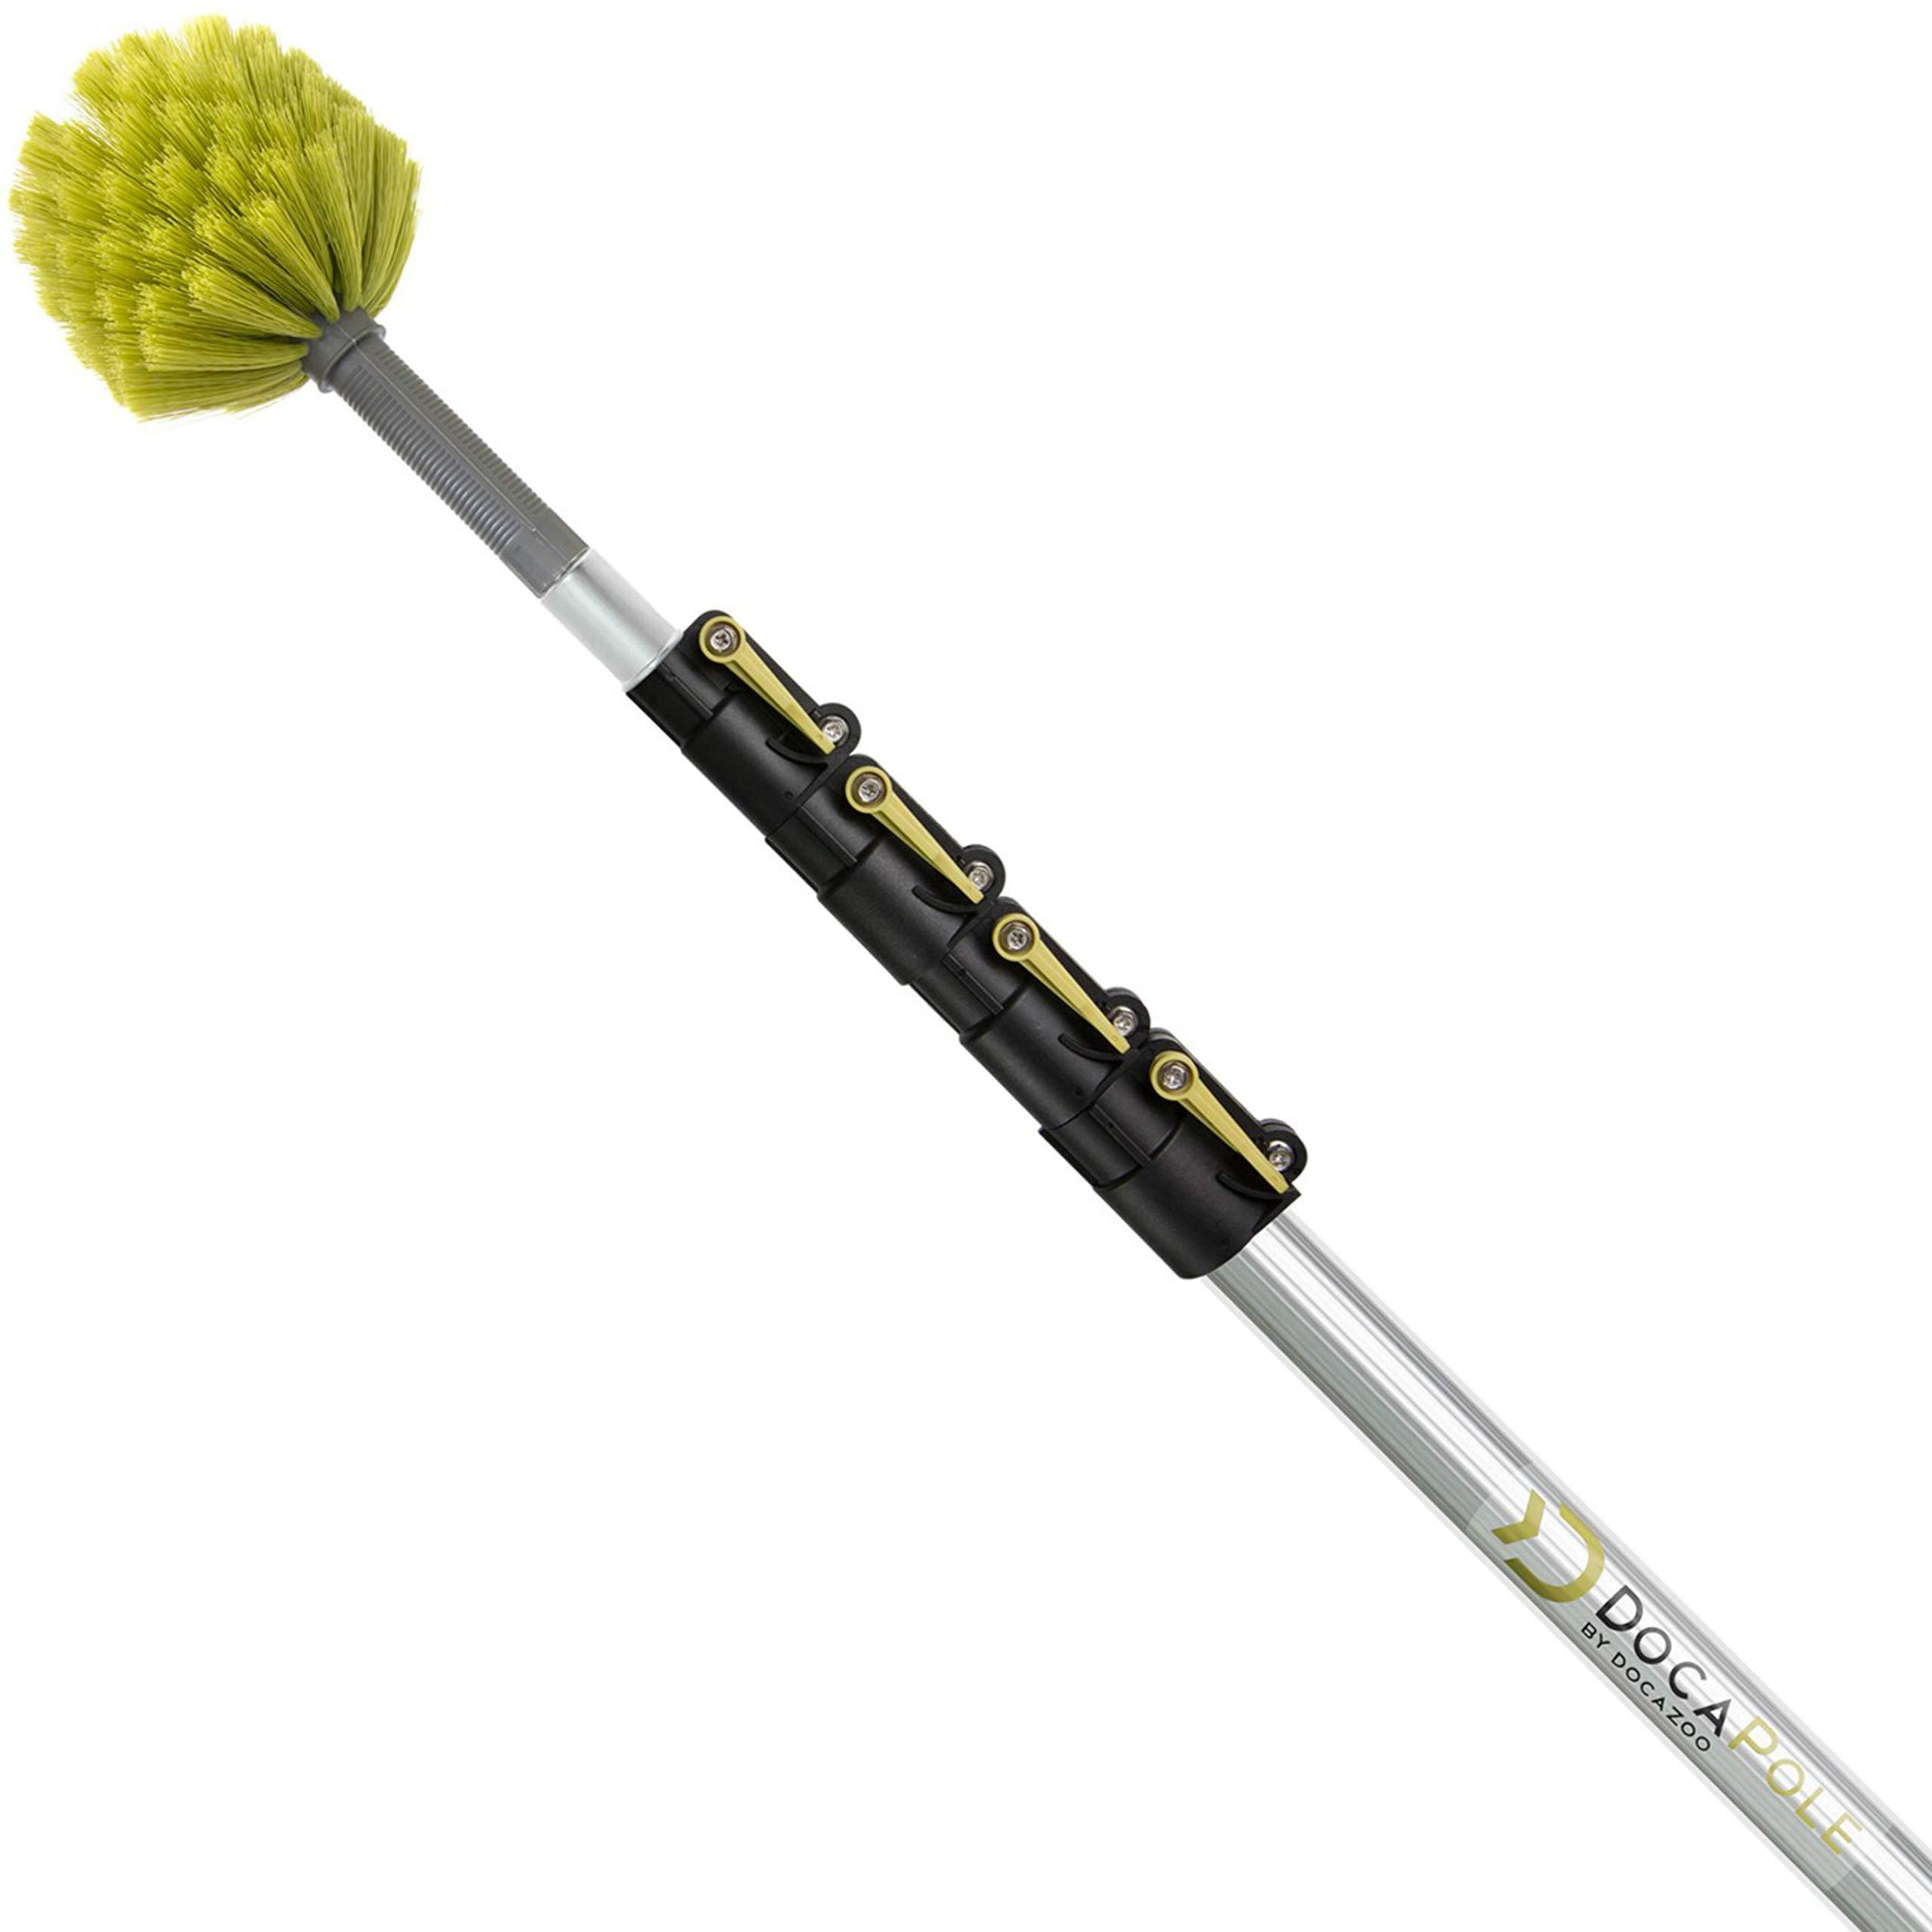 DocaPole 6-24 Foot Extension Pole with Cobweb Duster // Ceiling and Corner Duster // for Dusting and Cleaning High Ceilings and Corners with Extension Pole // Telescopic Pole Dusting and Cleaning Kit by DOCAZOO